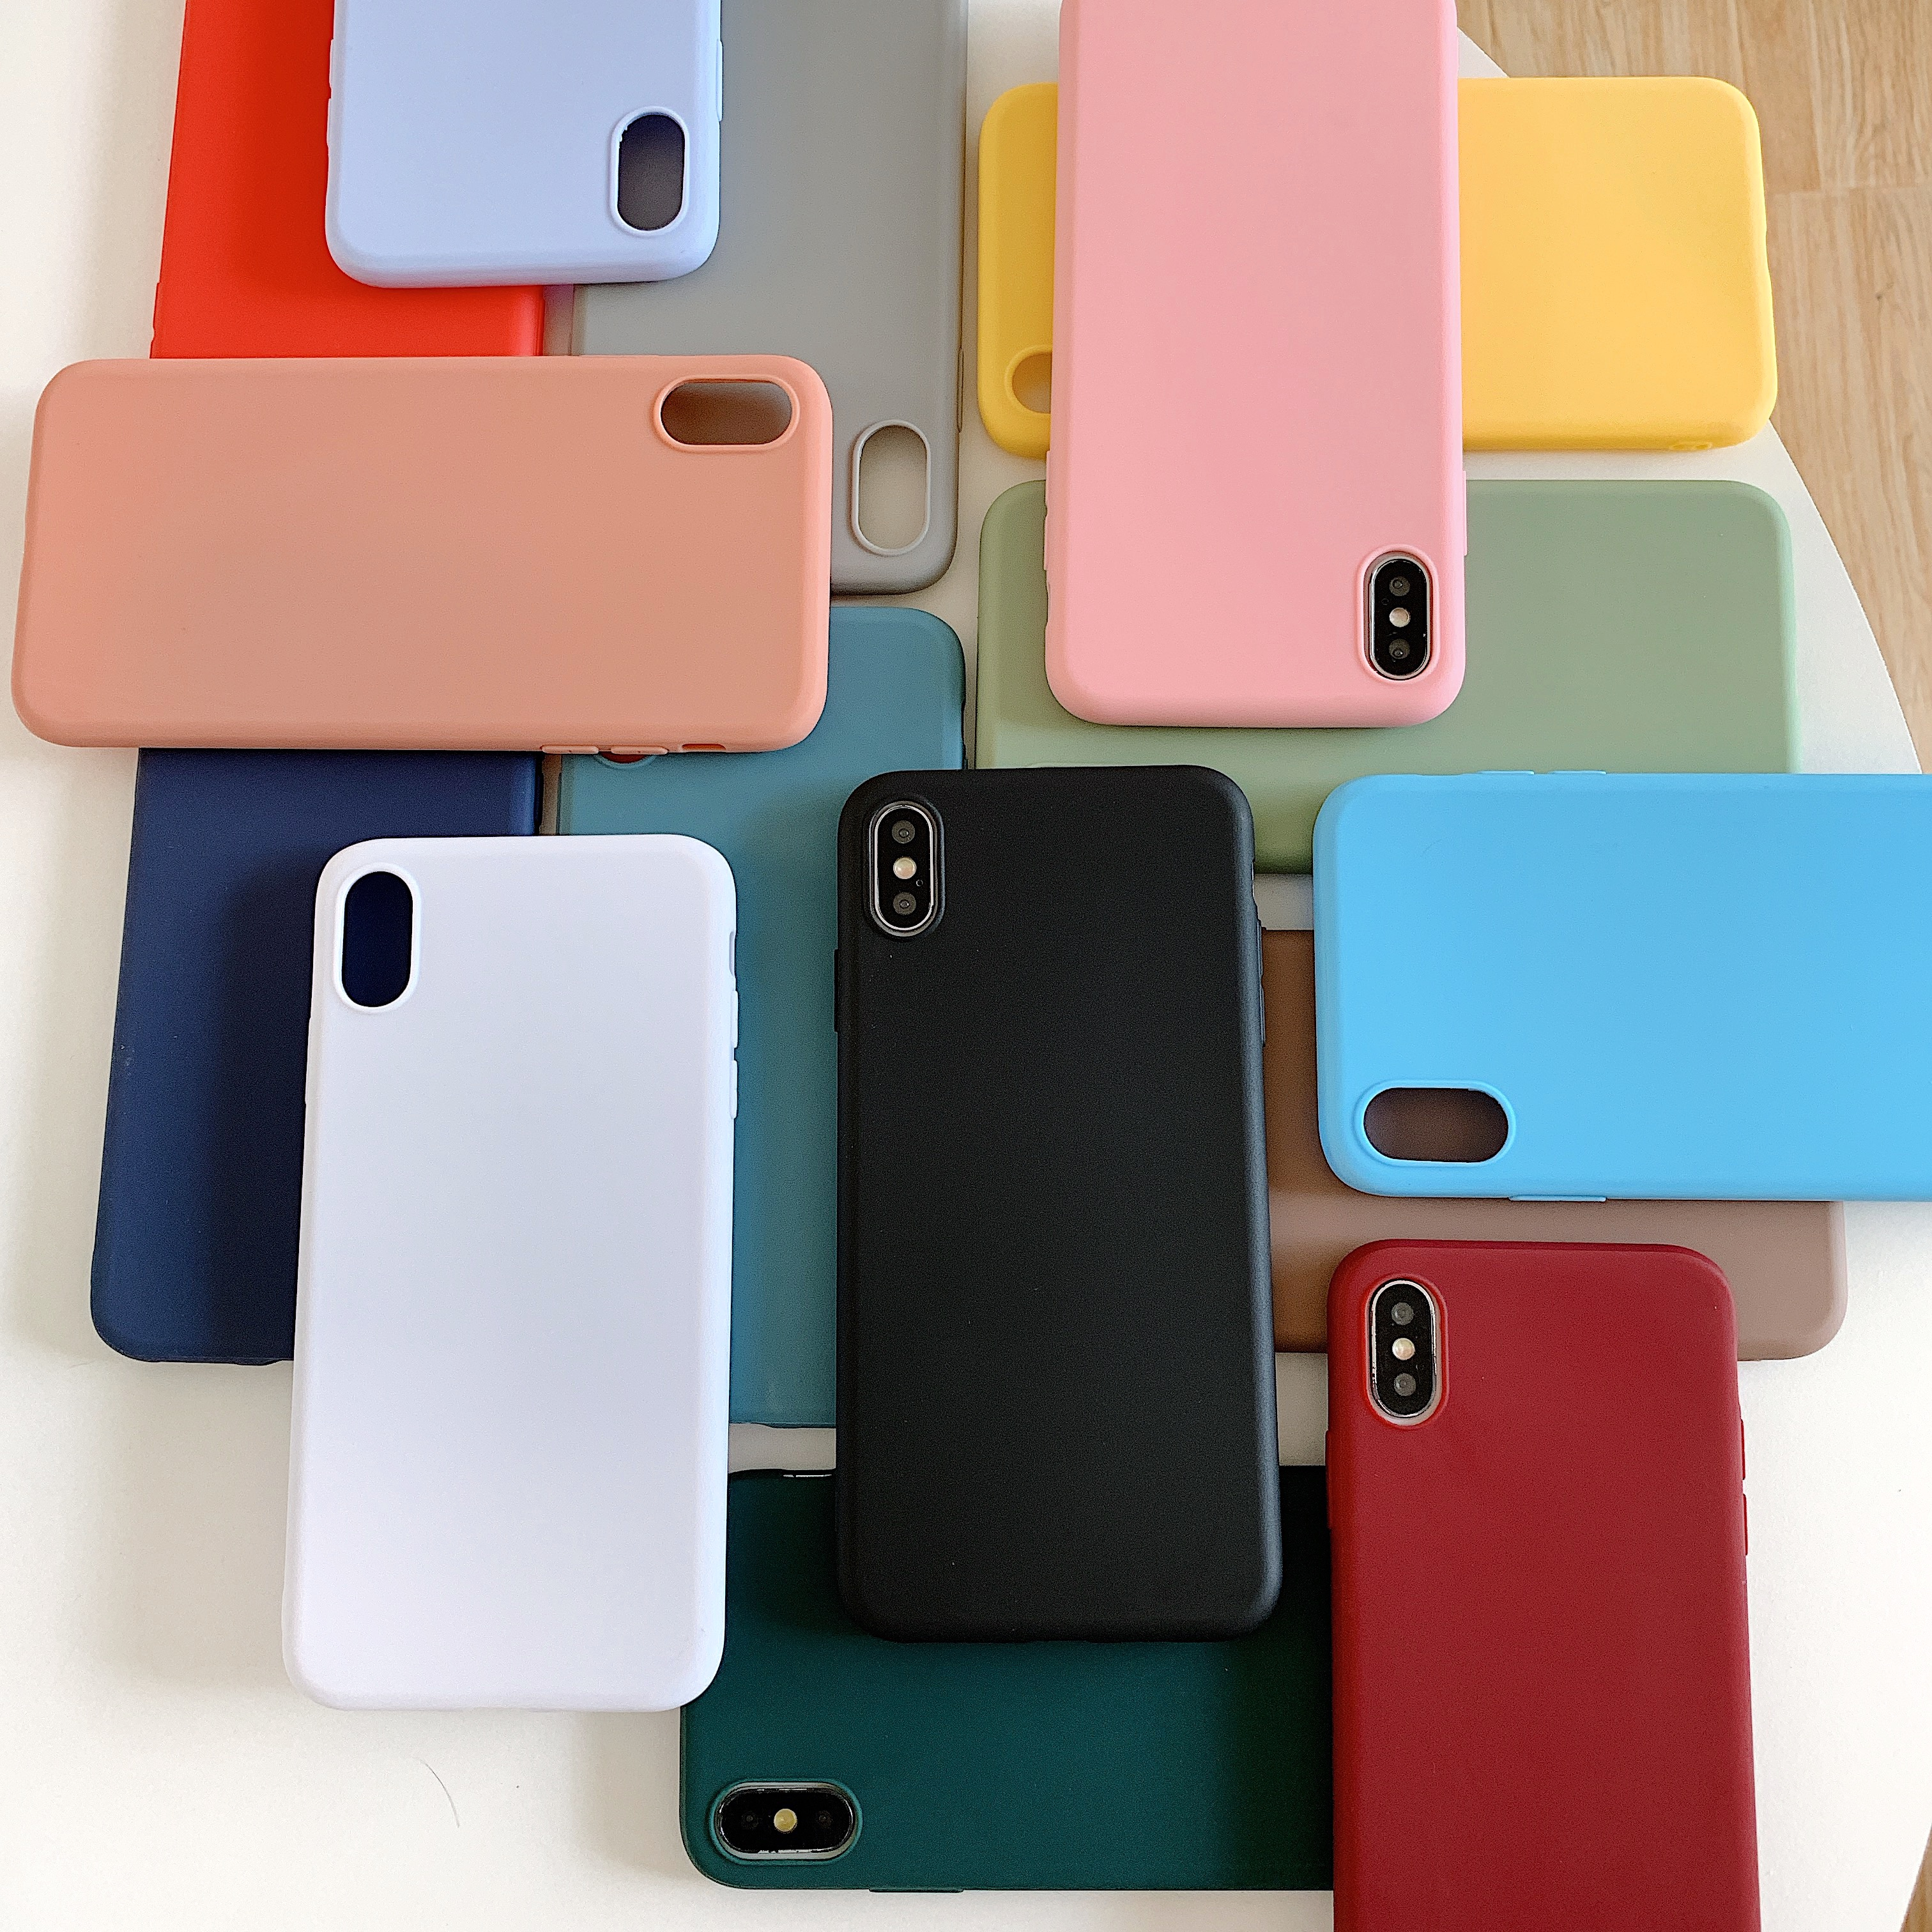 Luxury Candy Soft silicone cover For <font><b>OPPO</b></font> <font><b>A37</b></font> A57 A39 A59 A71 A73 F5 A77 A79 A83 A1 <font><b>phone</b></font> <font><b>case</b></font> image